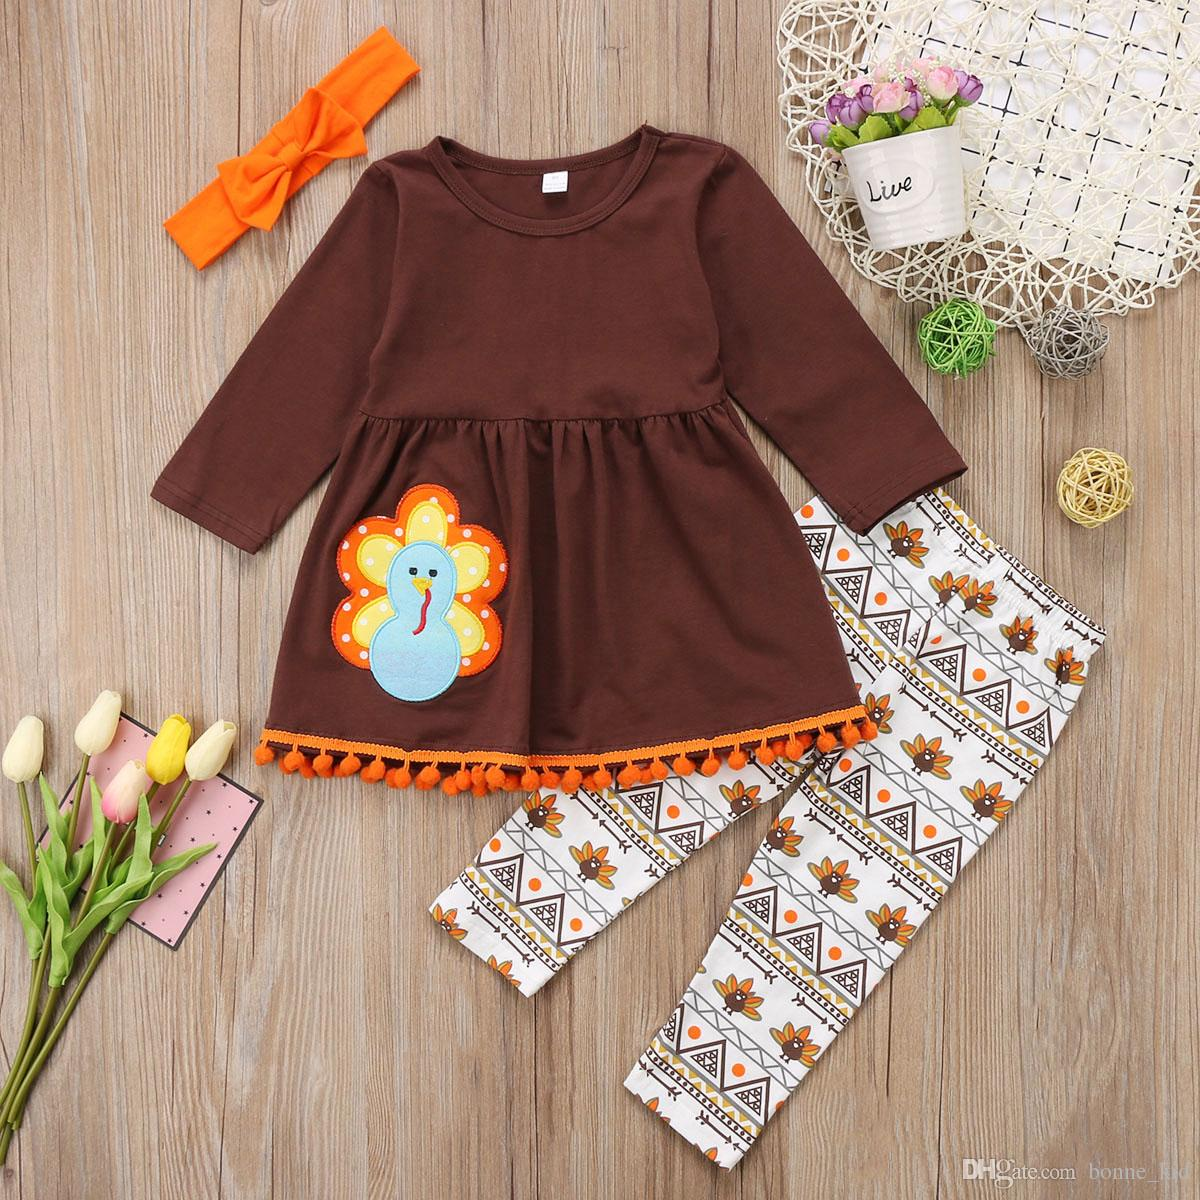 1d357d7036f64 Kids girl clothes outfit thanksgiving T-shirt top pant set lovely girls kid  clothing preppy boutique dress suits cute turkey toddler 2-7T